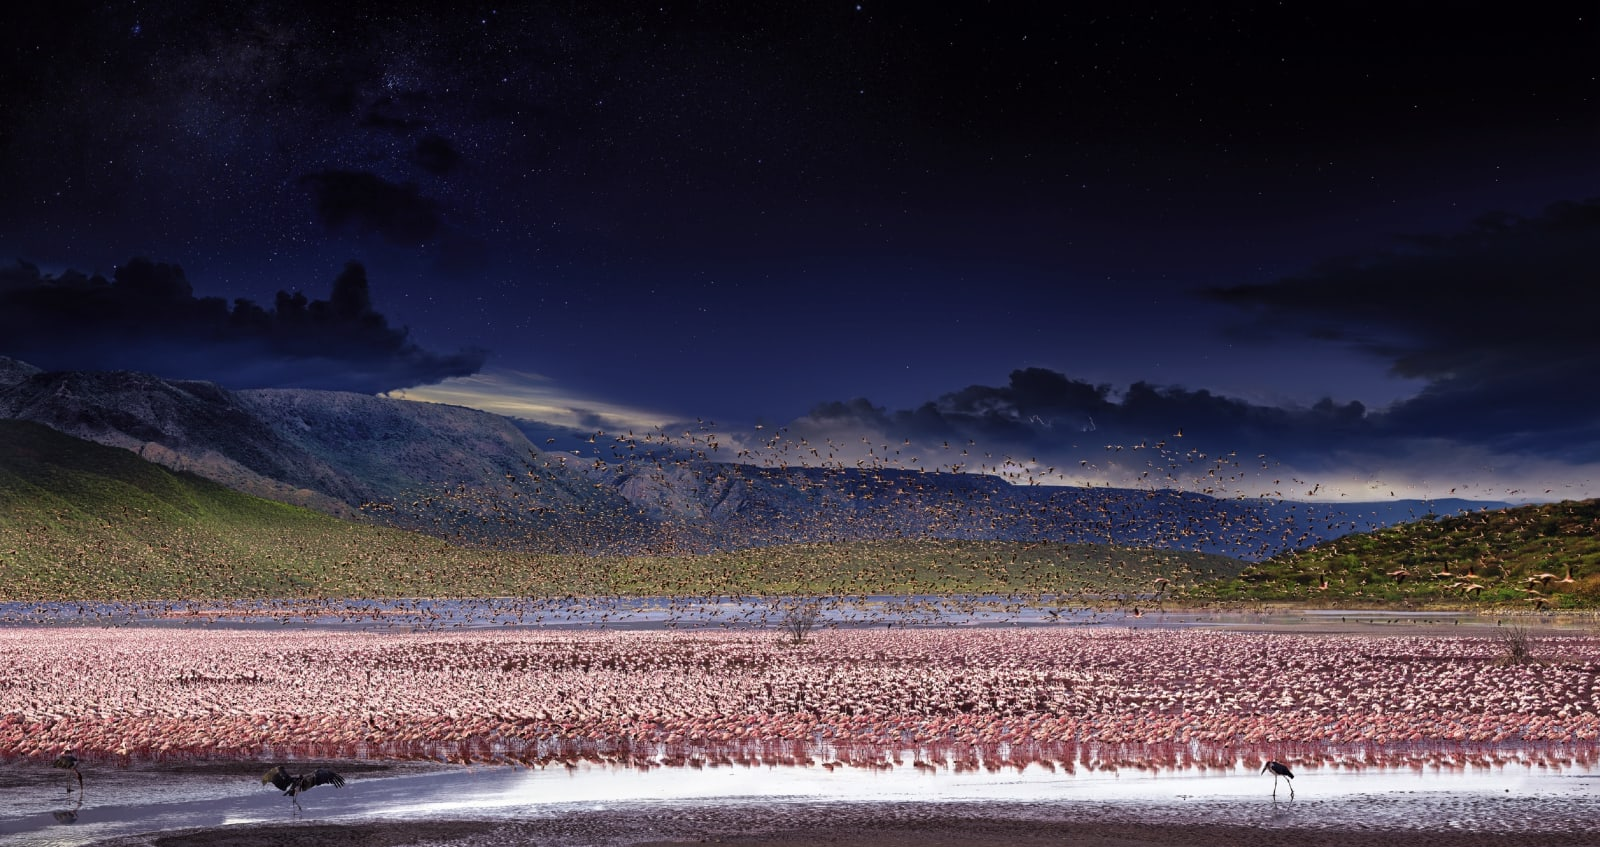 Stephen Wilkes Lesser Flamingos, Lake Bogoria Kenya, Africa, Day to Night, 2017 Signed on label verso 24 x 45 1/2 inch archival pigment print Edition of 20 34 x 64 inch archival pigment print Edition of 15 50 x 94 inch archival pigment print Edition of 12 60 x 113 inch archival pigment print Edition of 2